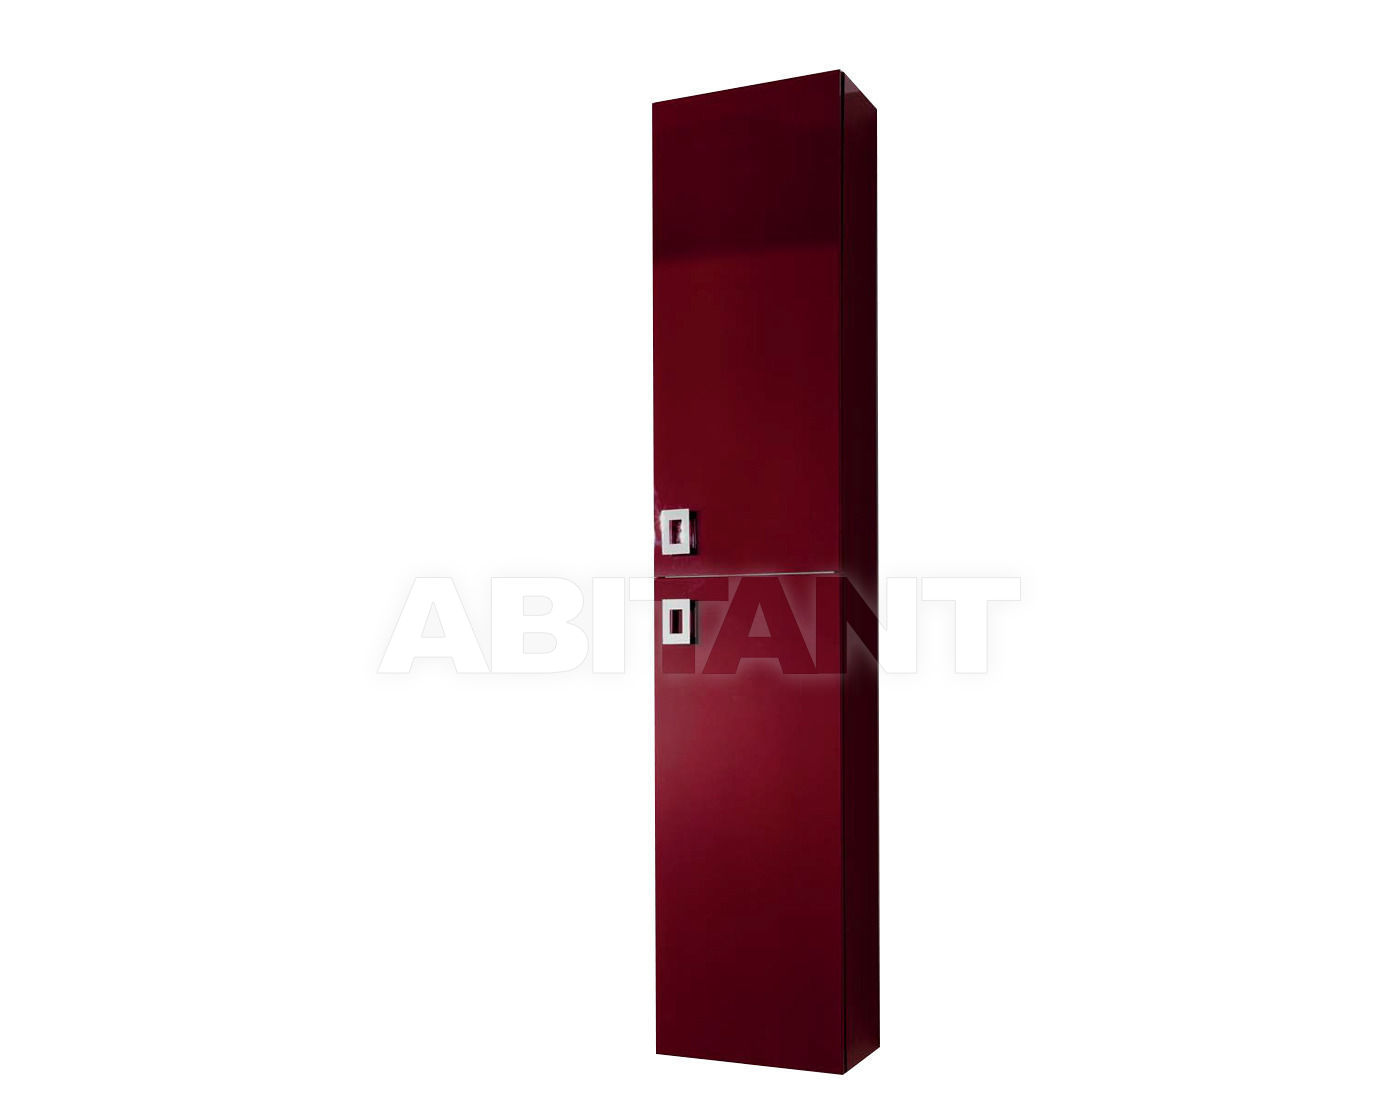 Купить Шкаф для ванной комнаты Ciciriello Lampadari s.r.l. Bathrooms Collection Colonna Margot 2A rosso